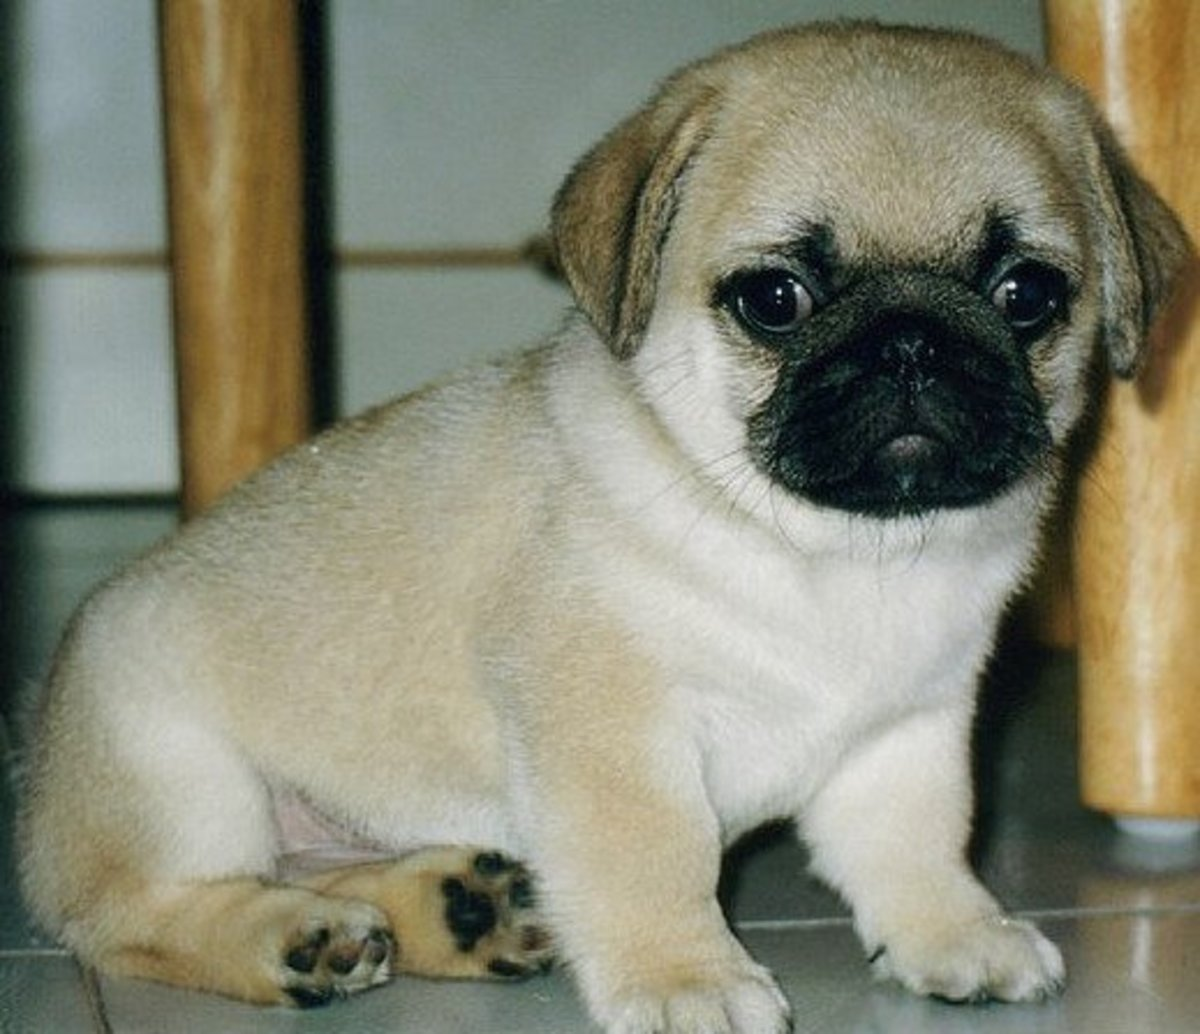 Baby Pug Pic courtesy of Ward Kadel on Flickr, licensed under Creative Commons